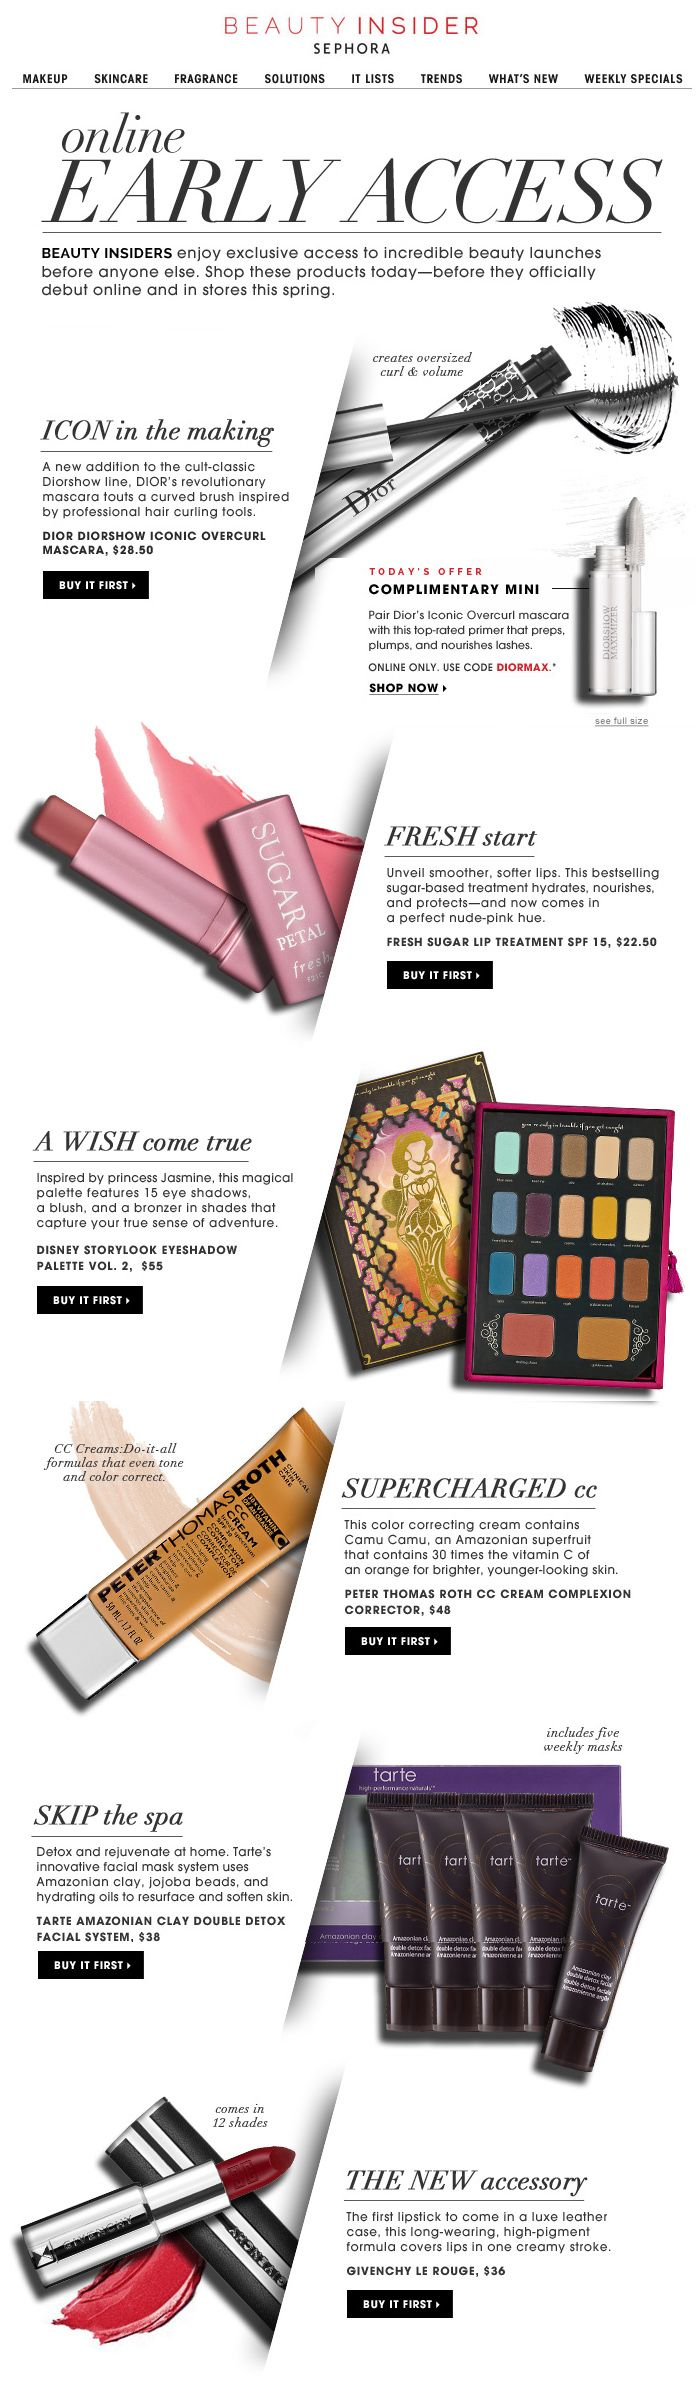 I really look forward to the Sephora Beauty Insider emails. It doesn't feel like spam or an ad, it's informative and effective! Almost like receiving a clip from a beauty magazine in my inbox every day.